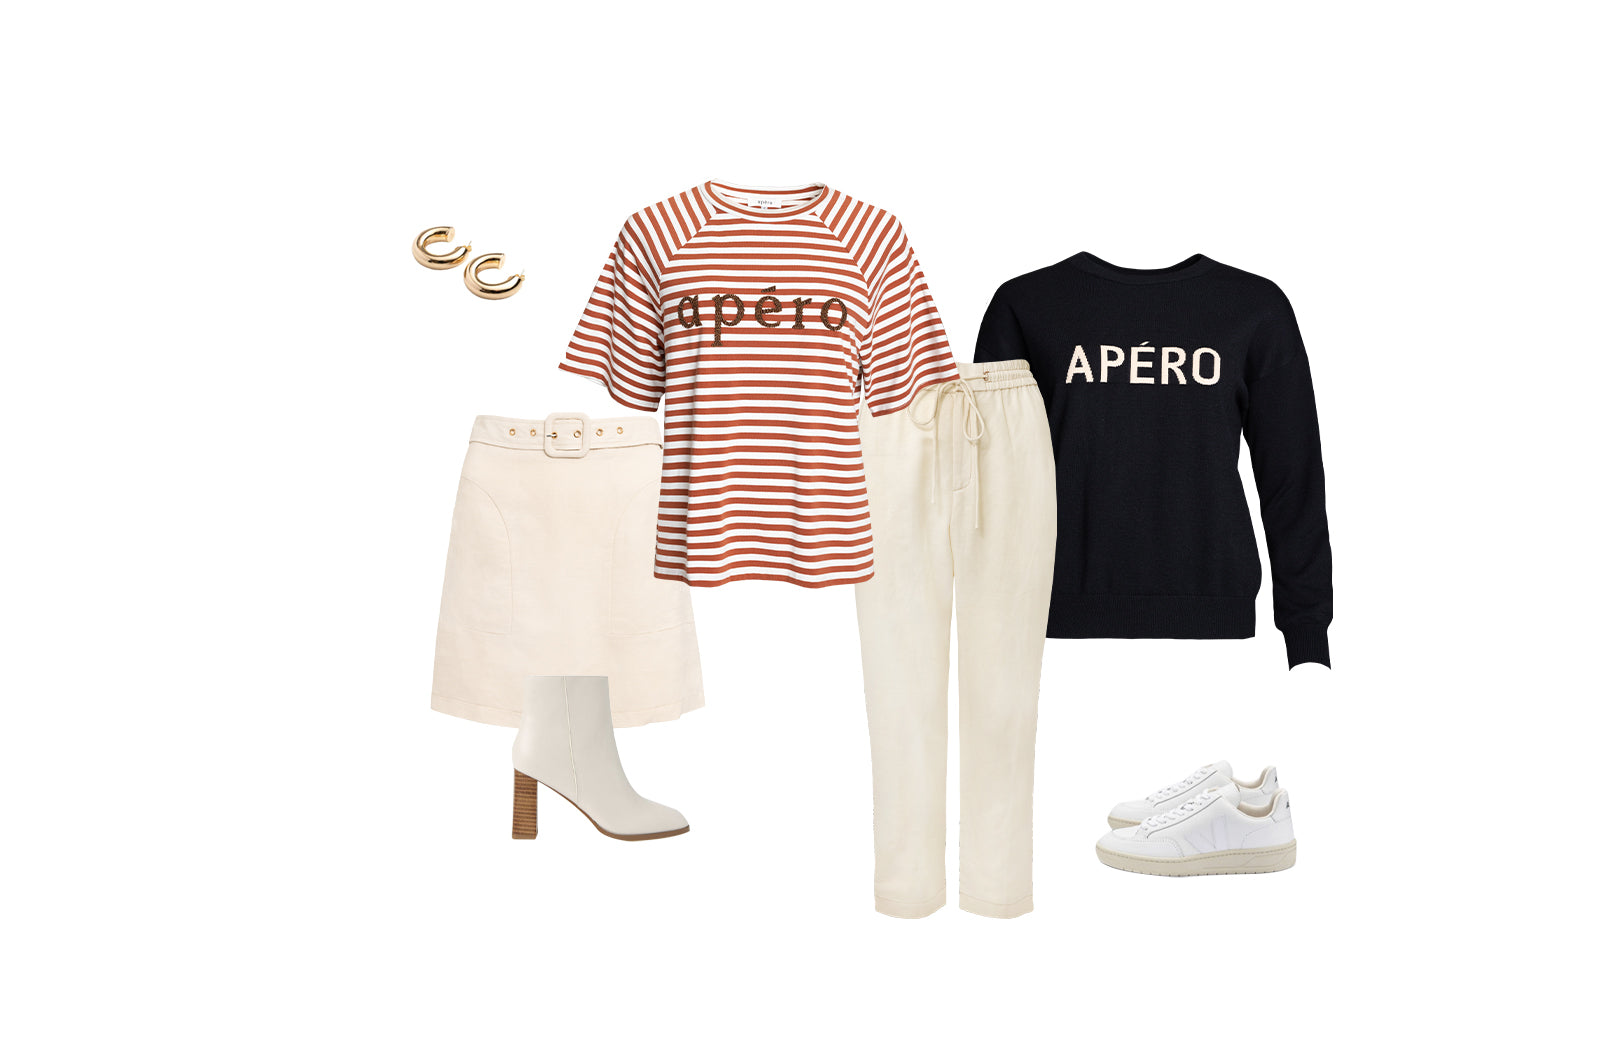 Malta Oversized Tee and The Perfect Knit Jumper